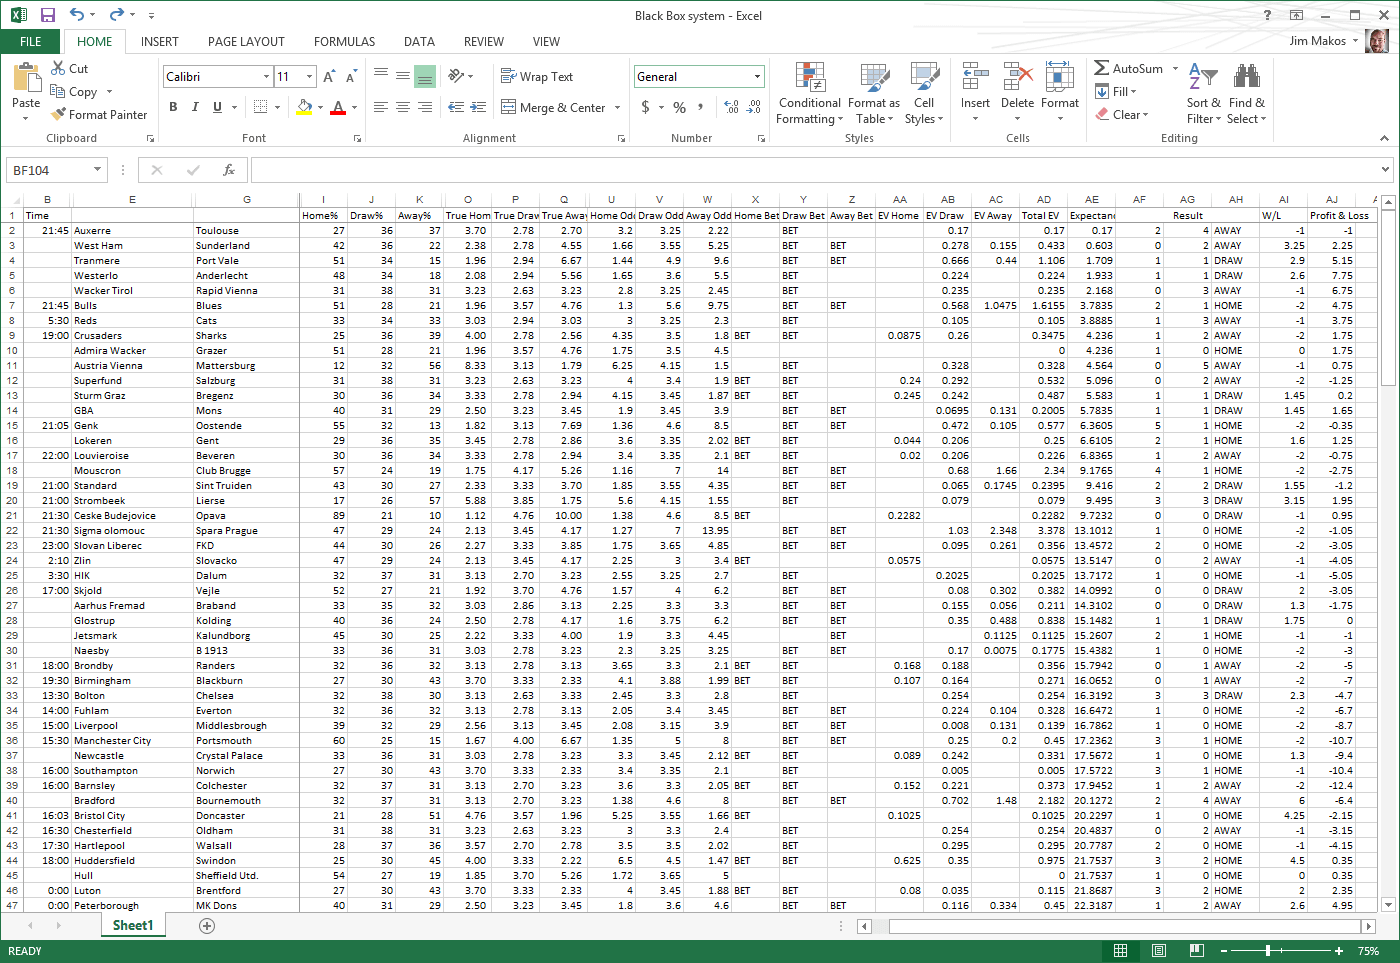 Keep Track Of Your Betting Performance With An Excel